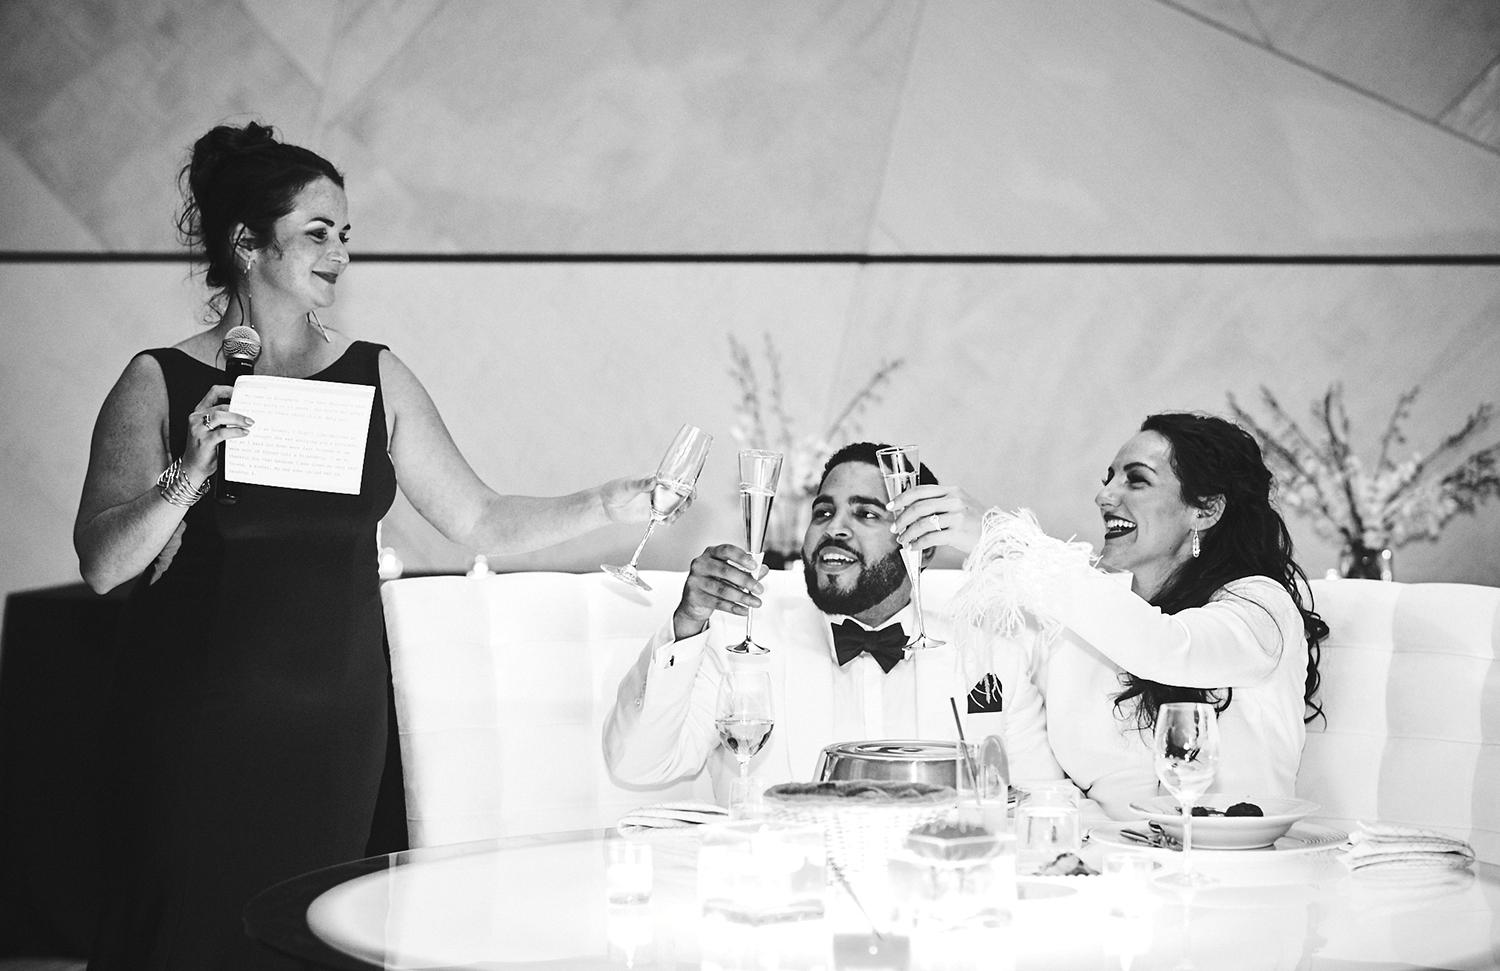 170930_WilliamValeWeddingPhotography_BrooklynWeddingPhotographer_By_BriJohnsonWeddings_0161.jpg